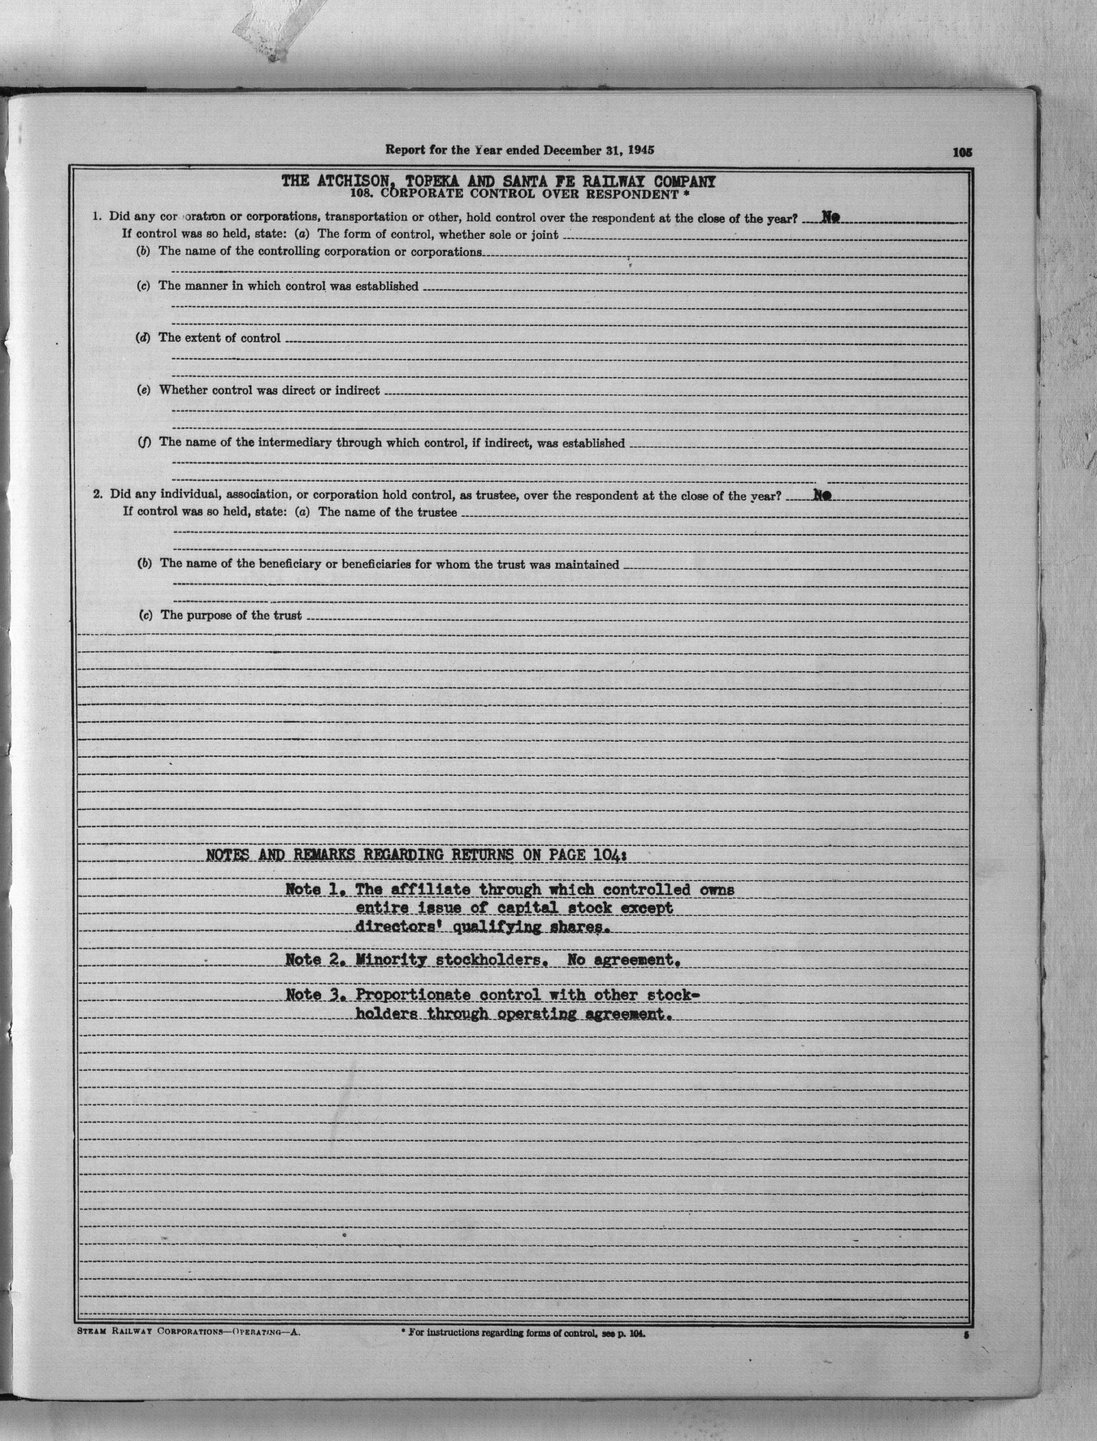 Annual reports of the Atchison, Topeka & Santa Fe Railway Company to the State Corporation Commission - 5 - 105